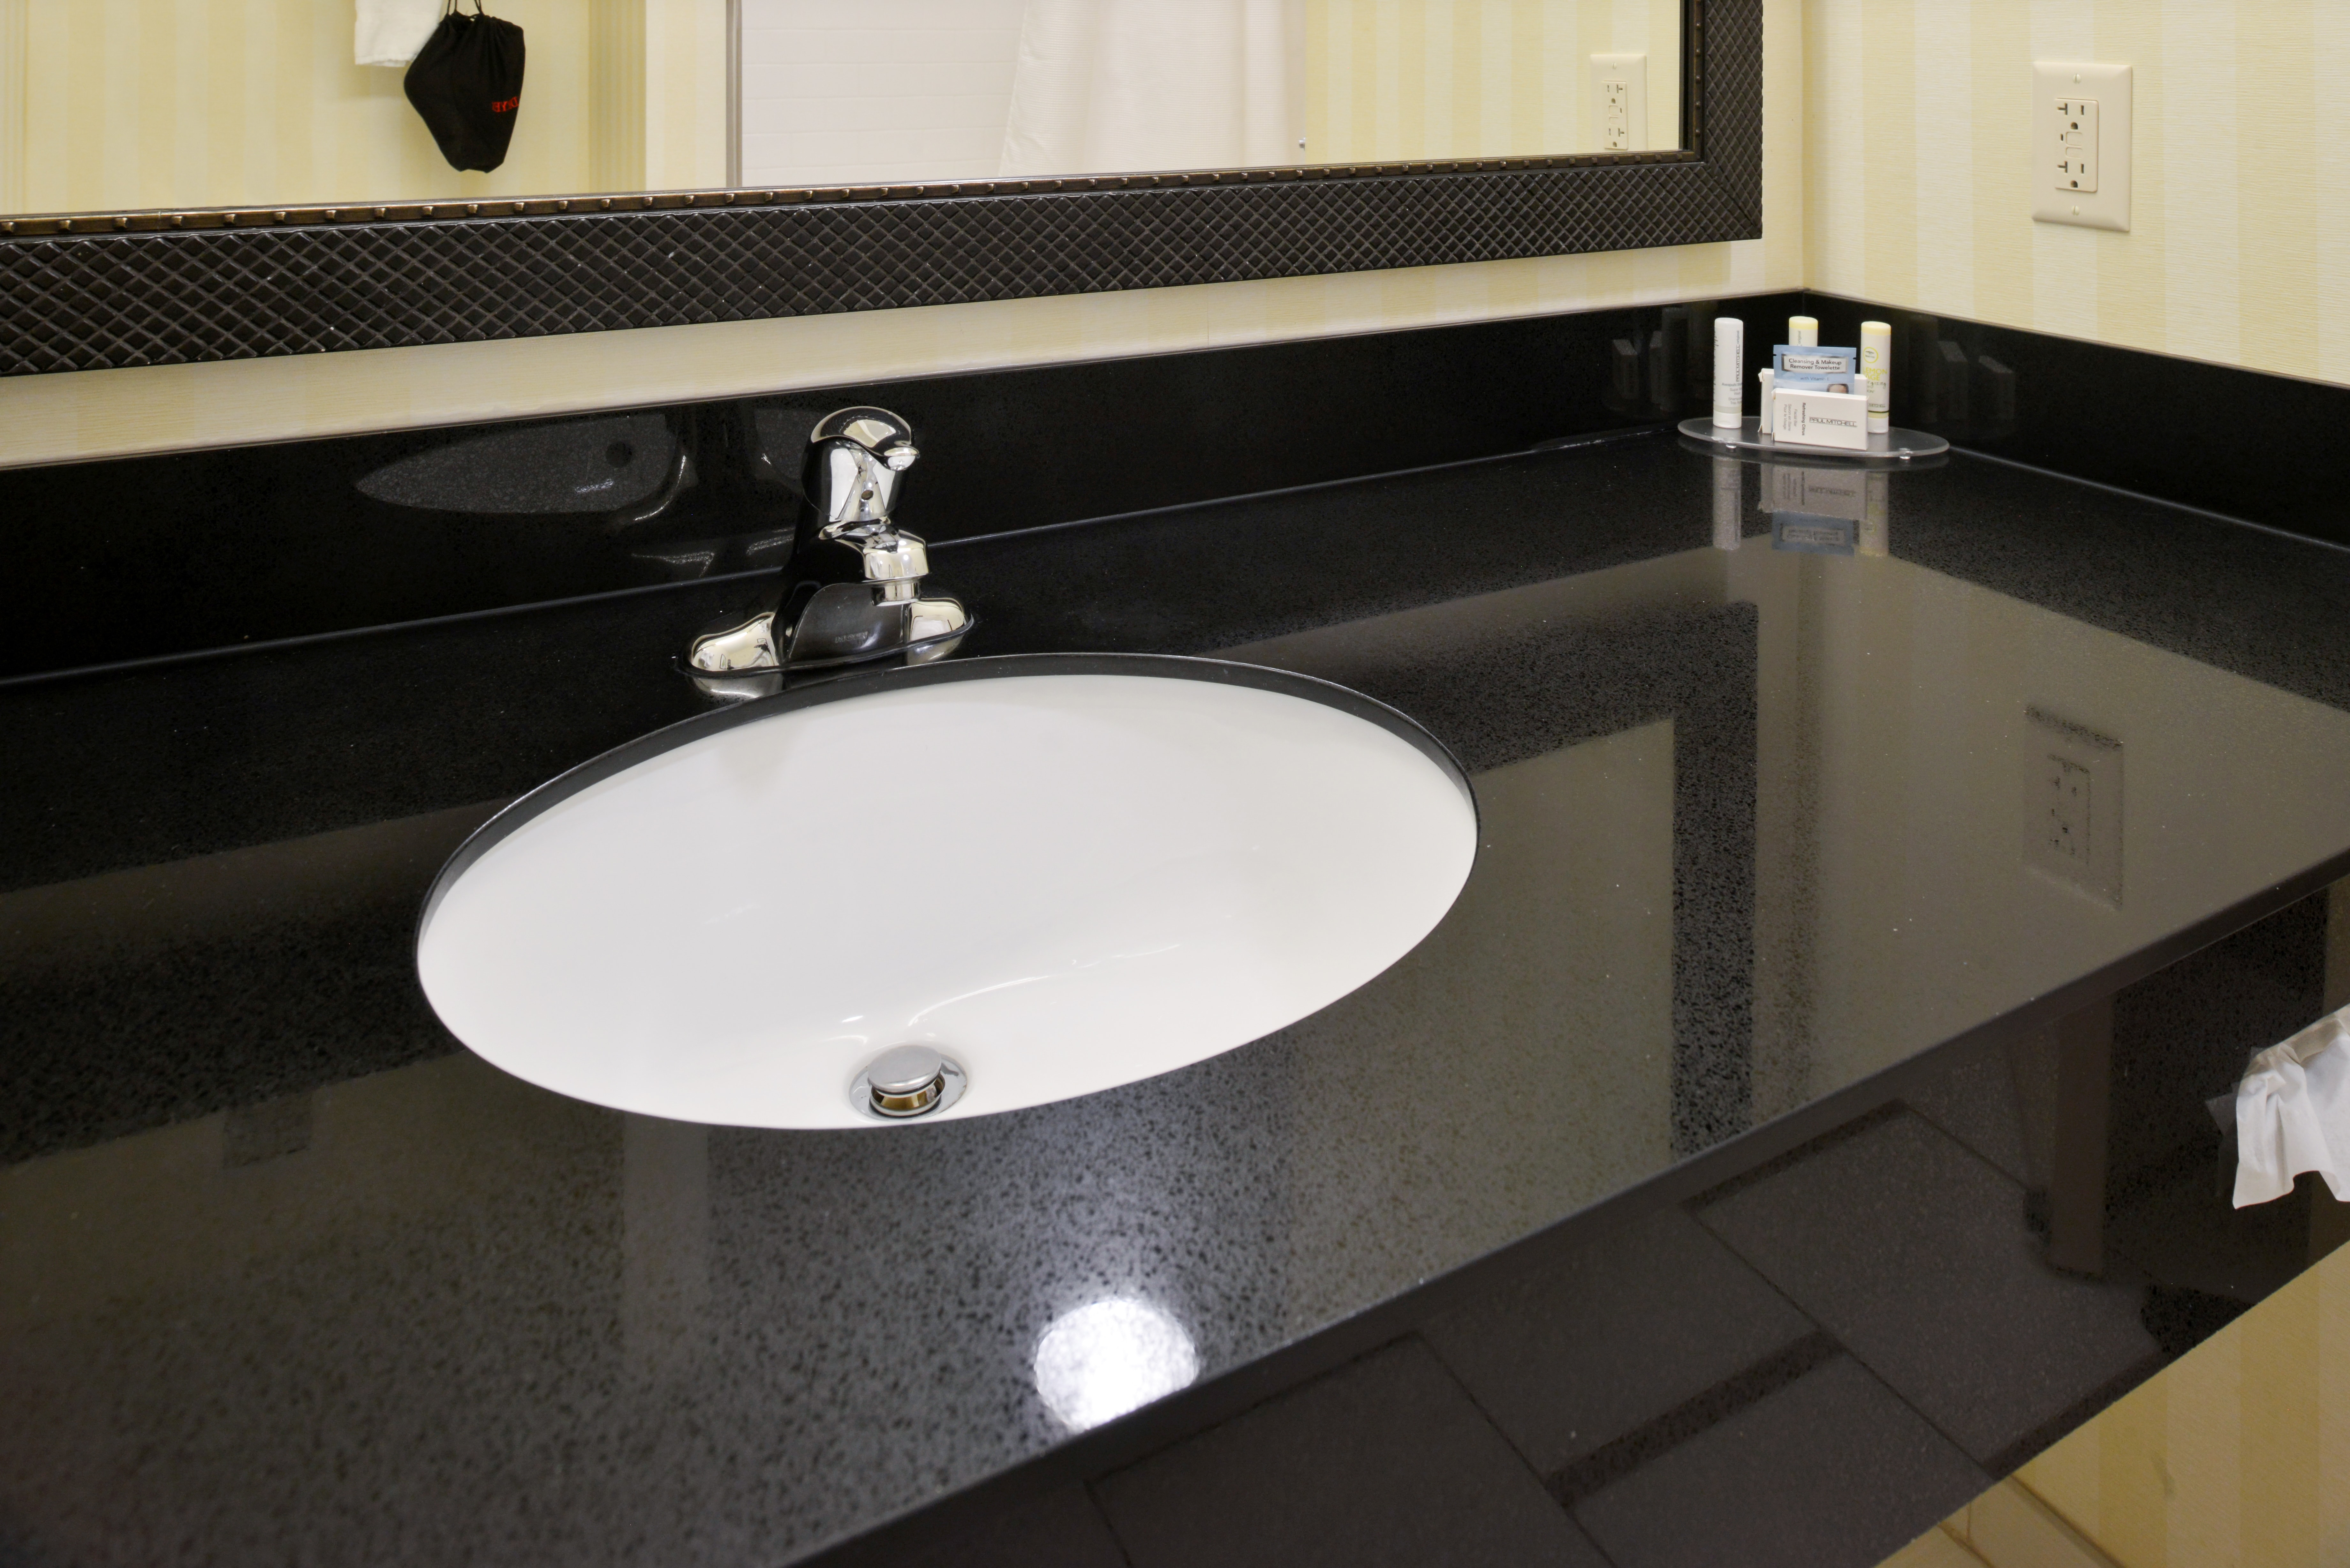 https://www.hotelsbyday.com/_data/default-hotel_image/3/15132/fis-cidcr-bathroom8.jpg